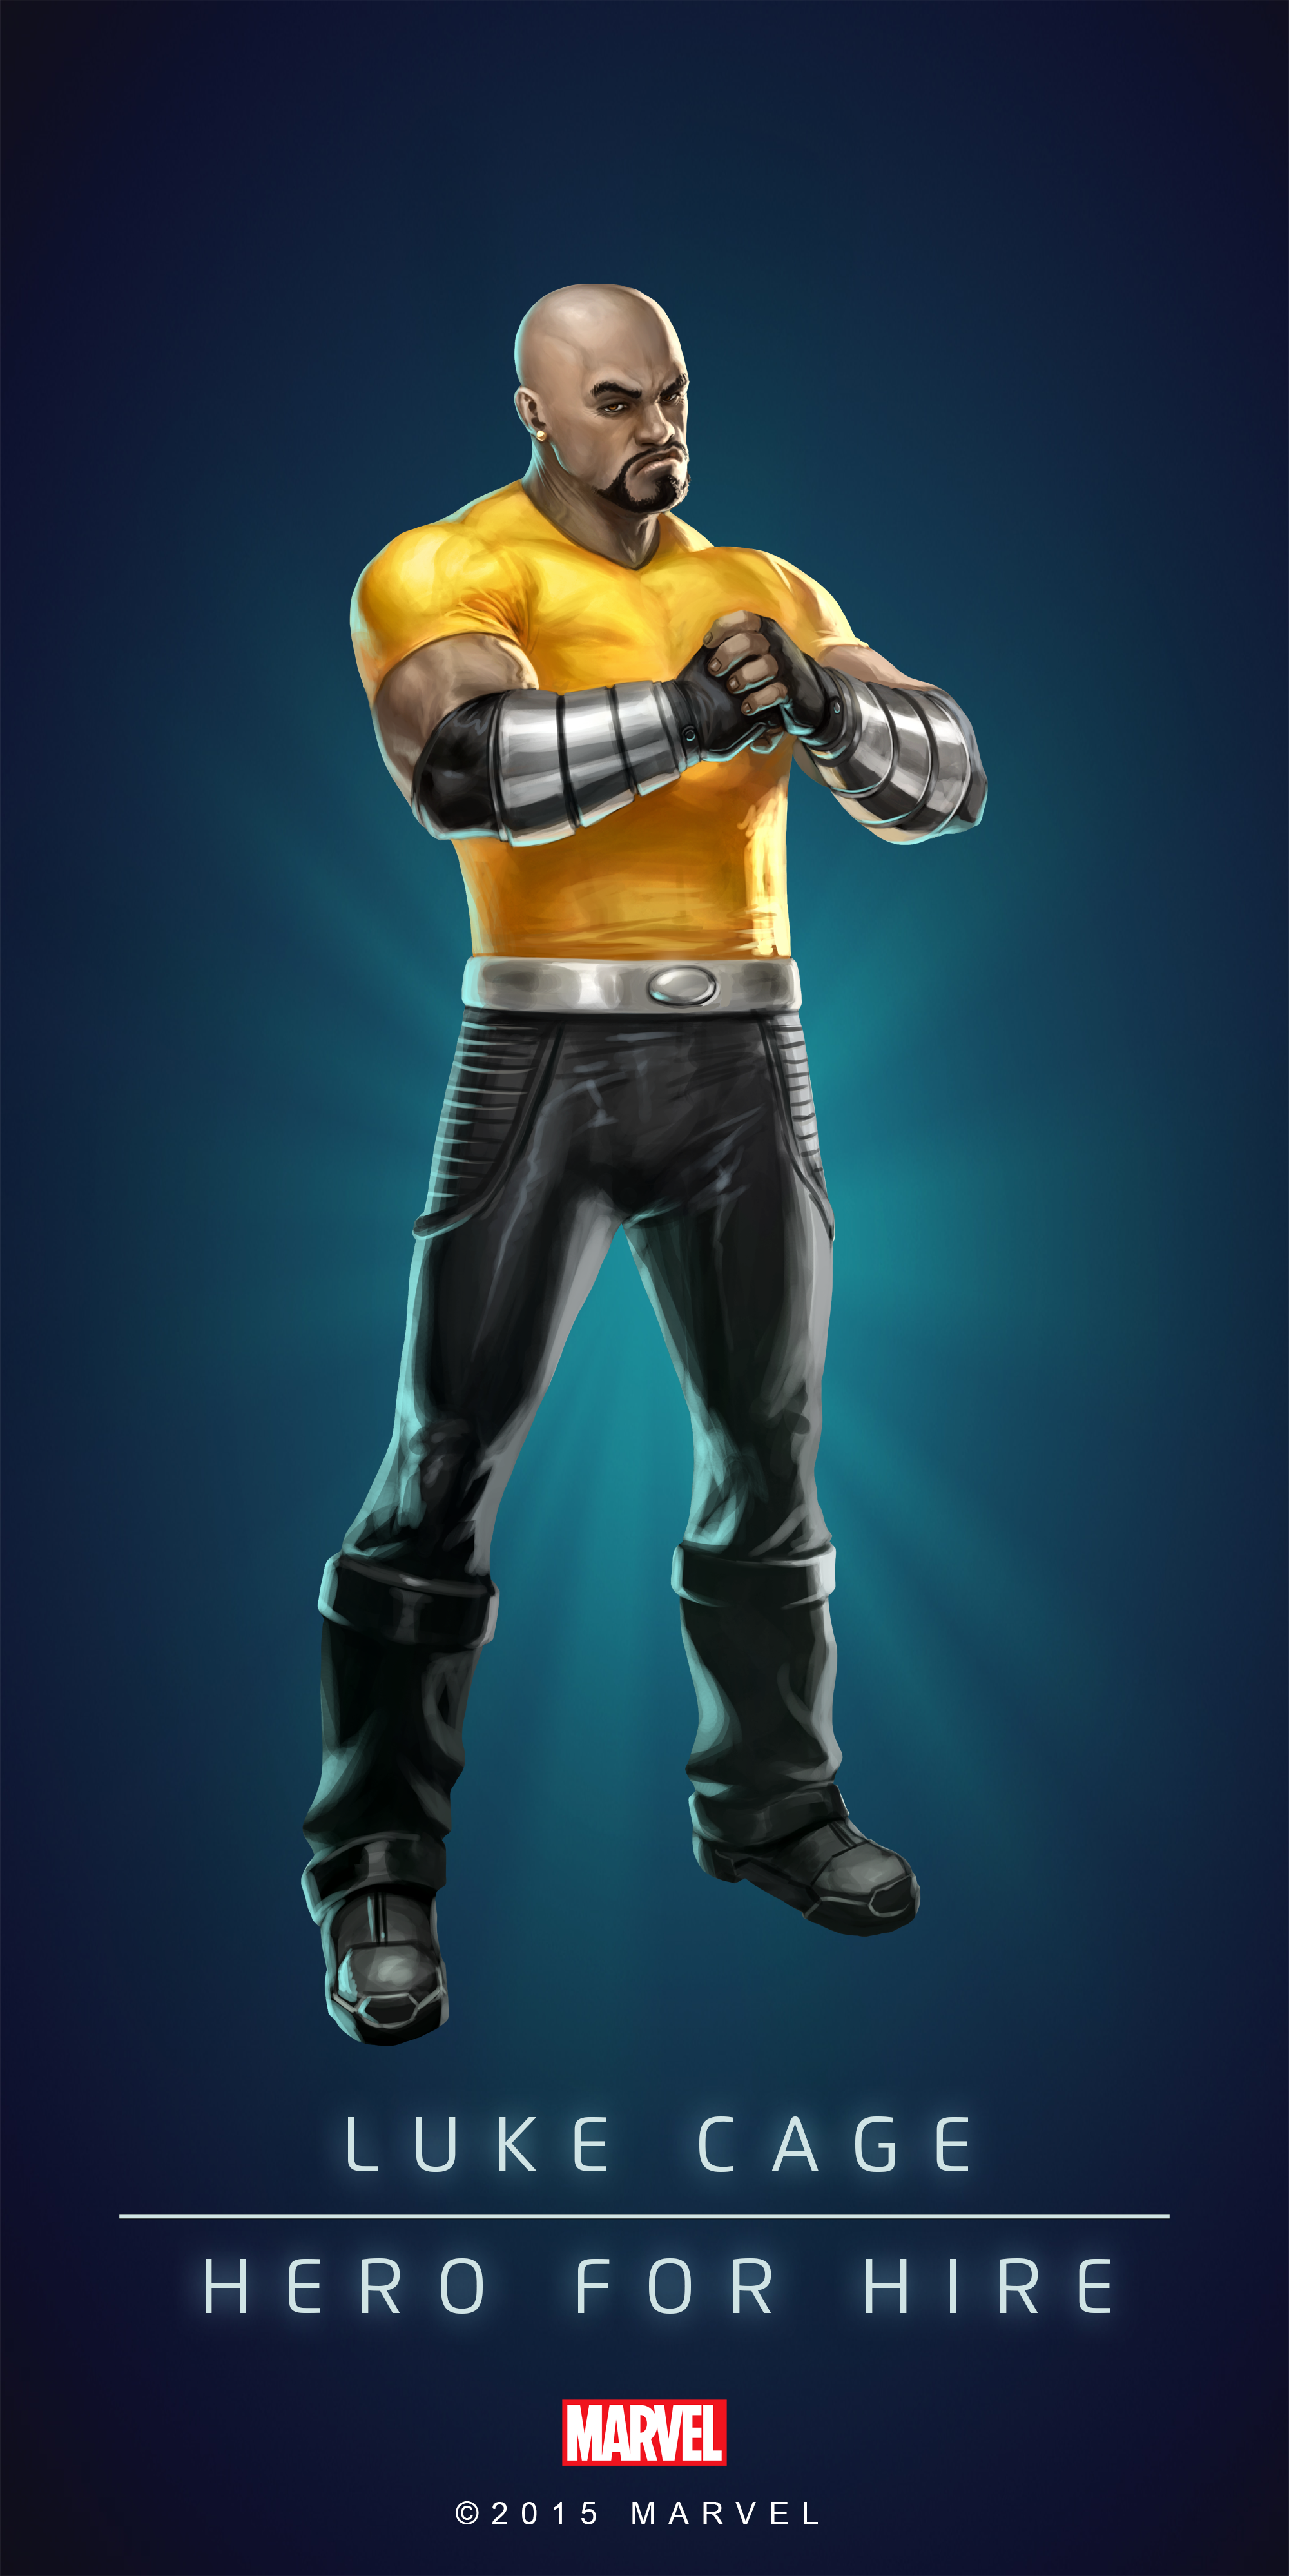 Luke Cage Fan Art Luke Cage Hero For Hire In Marvel S Puzzle Quest By Amadeus Cho The 5 Marvel Comic Character Marvel Superheroes Marvel Puzzle